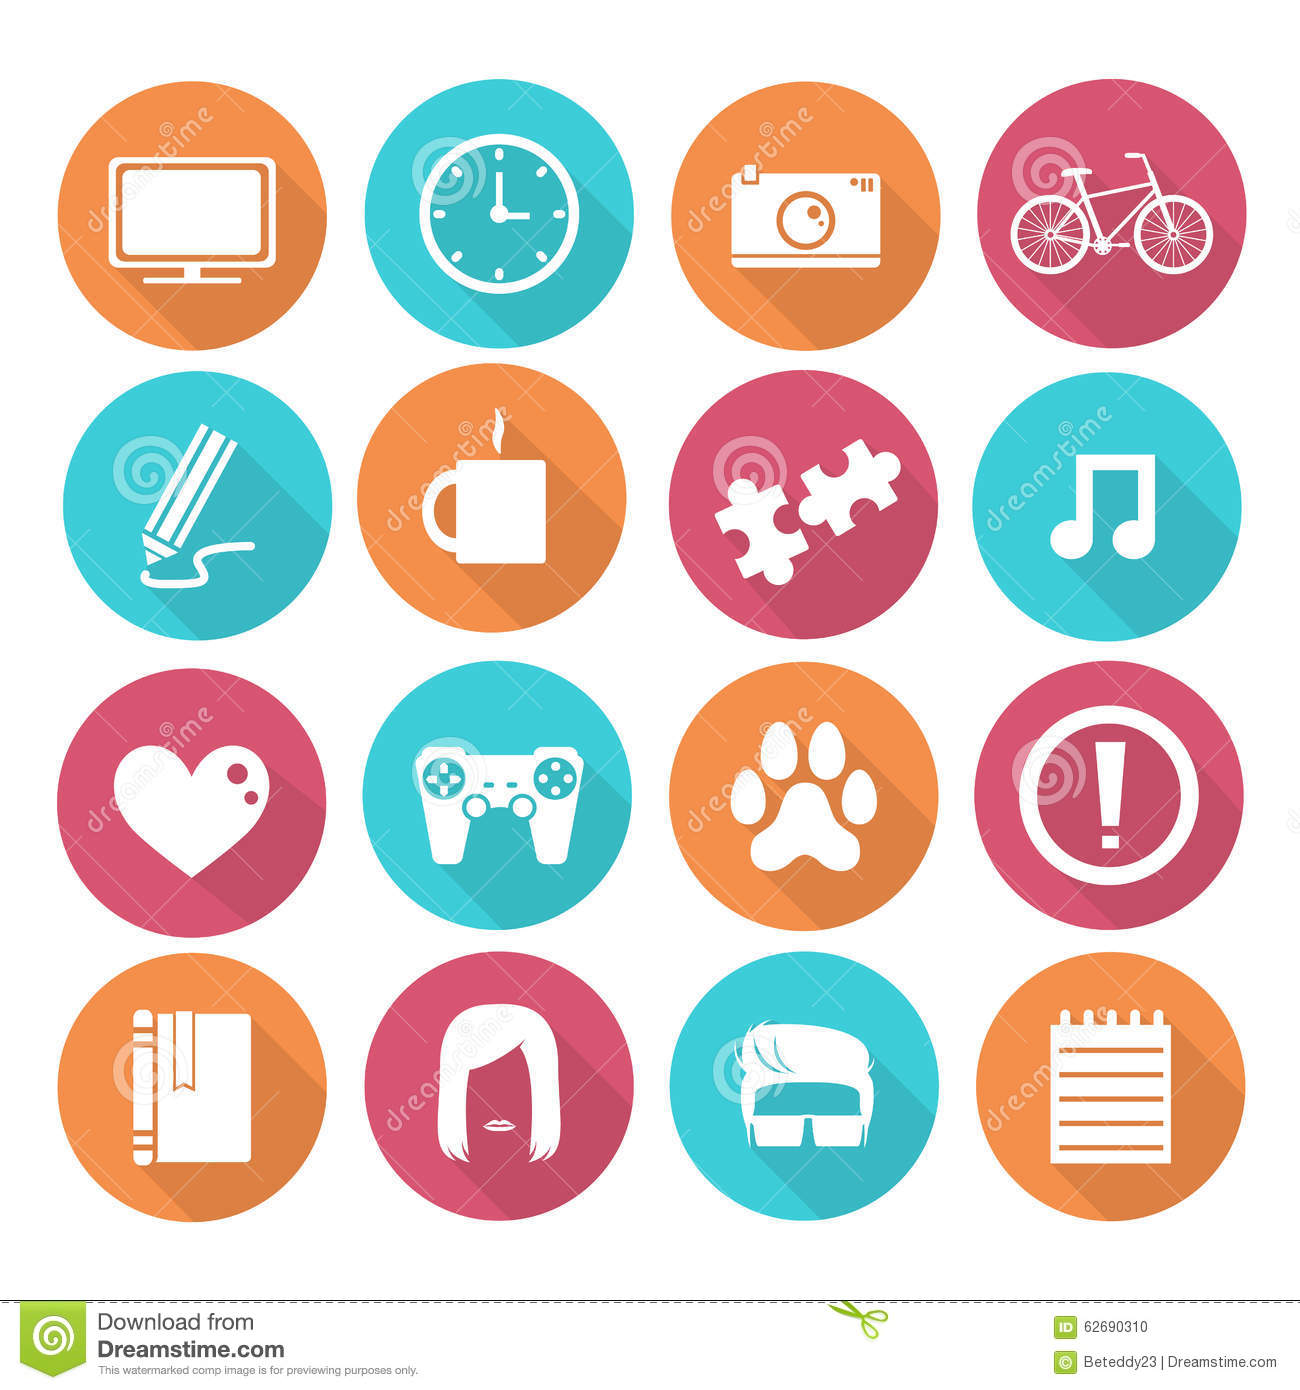 Simple objects icons stock vector. Illustration of blue 62690310.